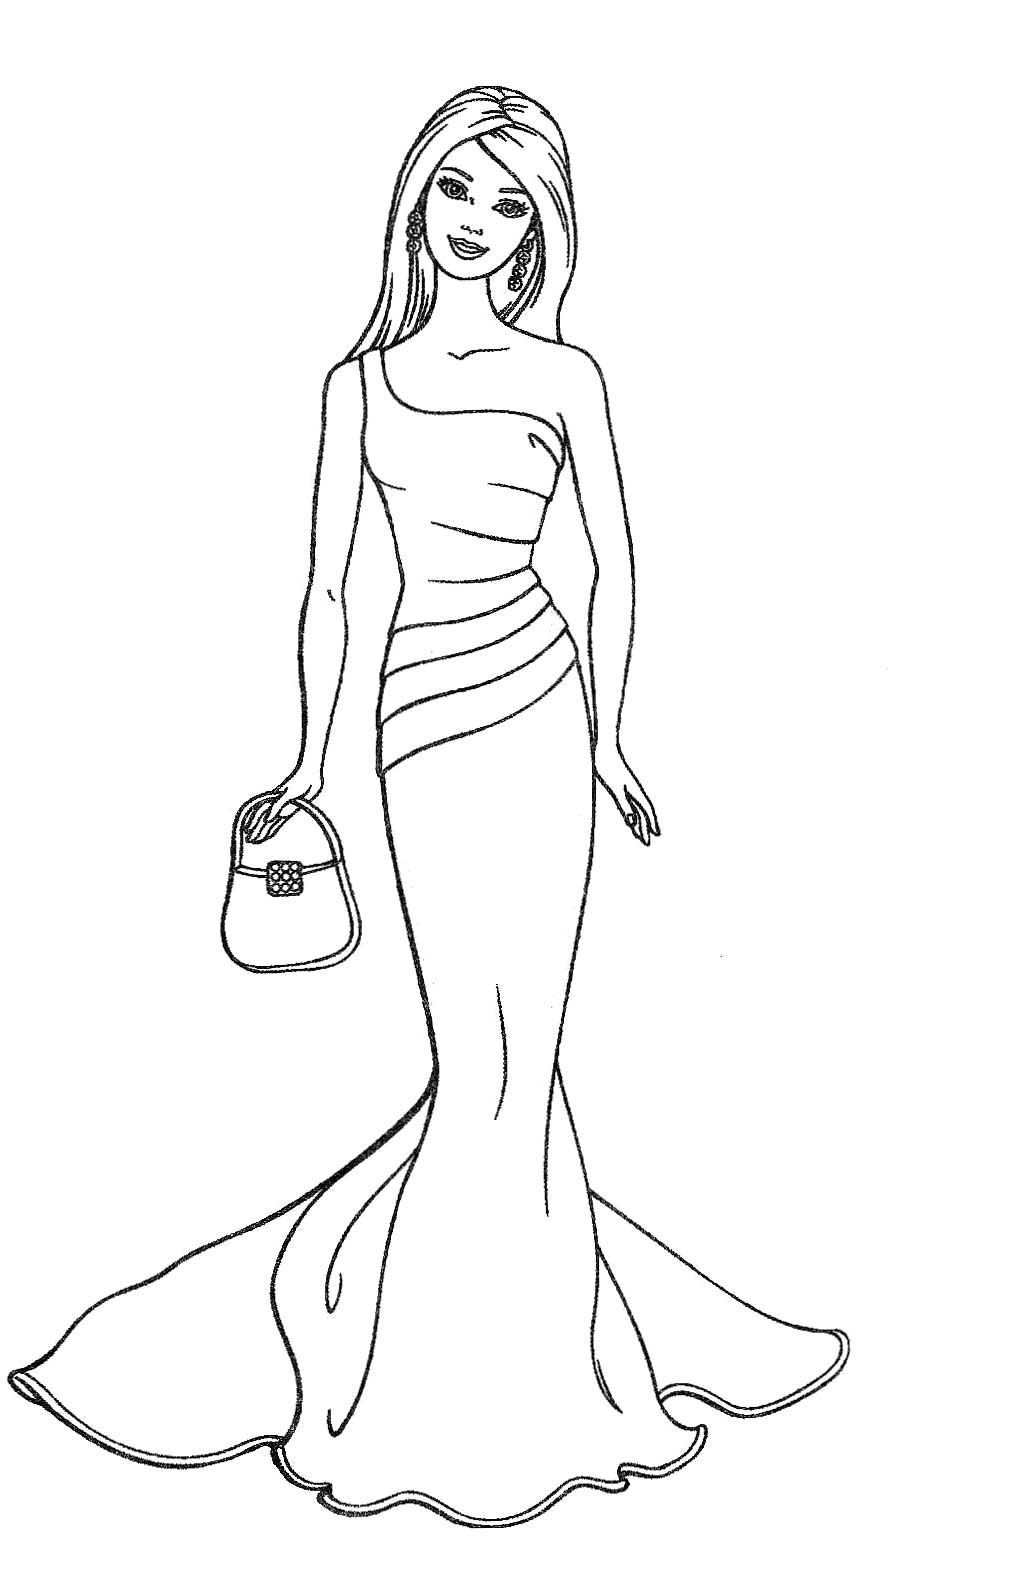 Barbie Coloring Pages Printable To Download Barbie Coloring Pages Princess Coloring Pages Barbie Drawing